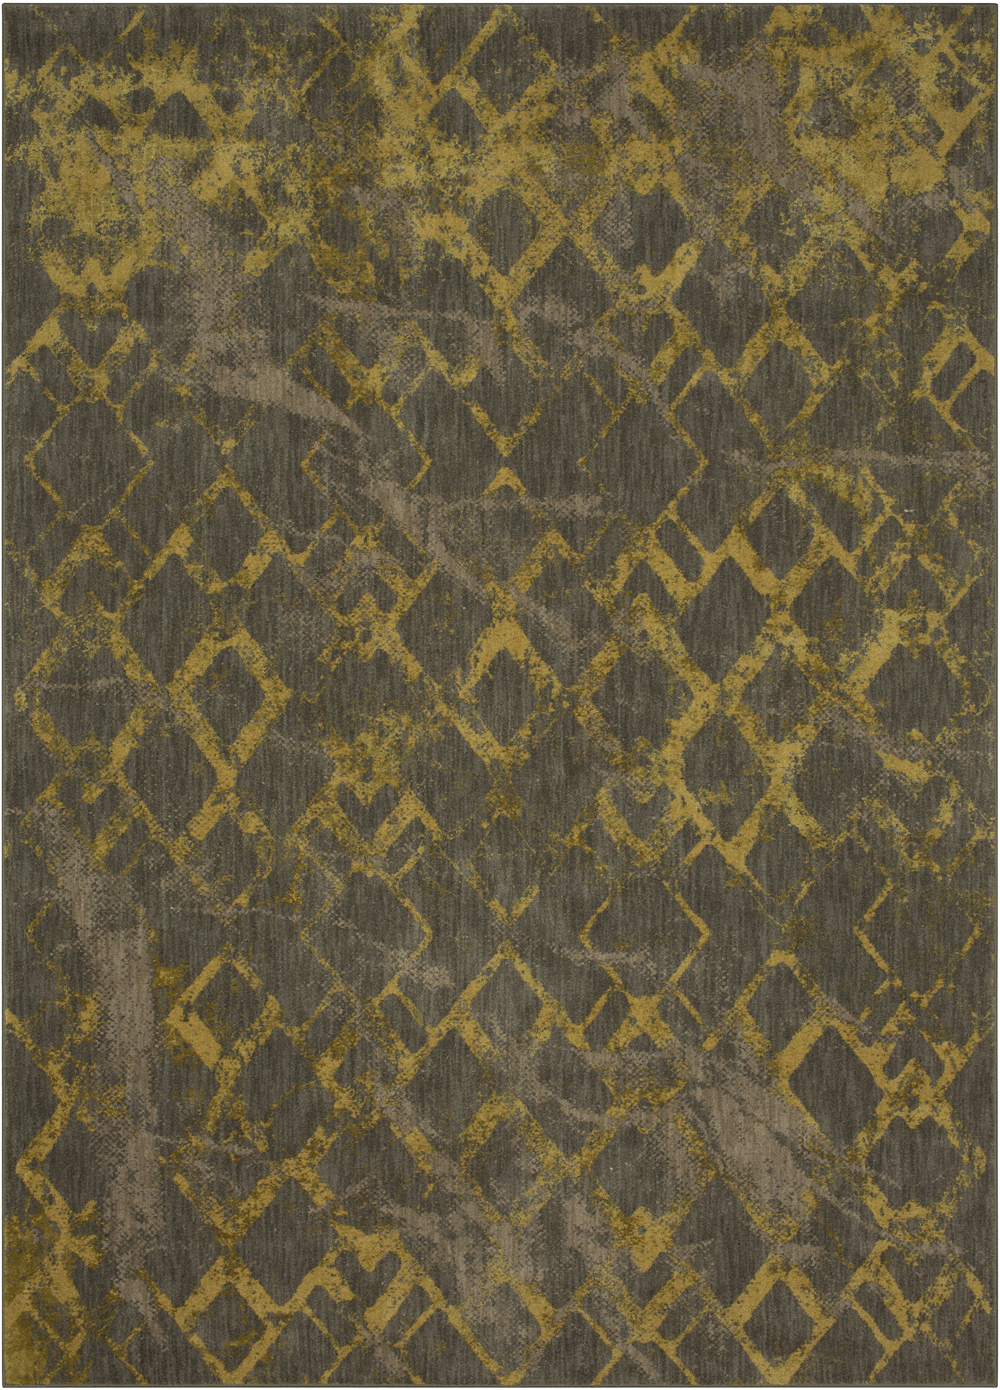 Karastan Cosmopolitan 91642 Quartz Brushed Gold by Patina Vie Rug